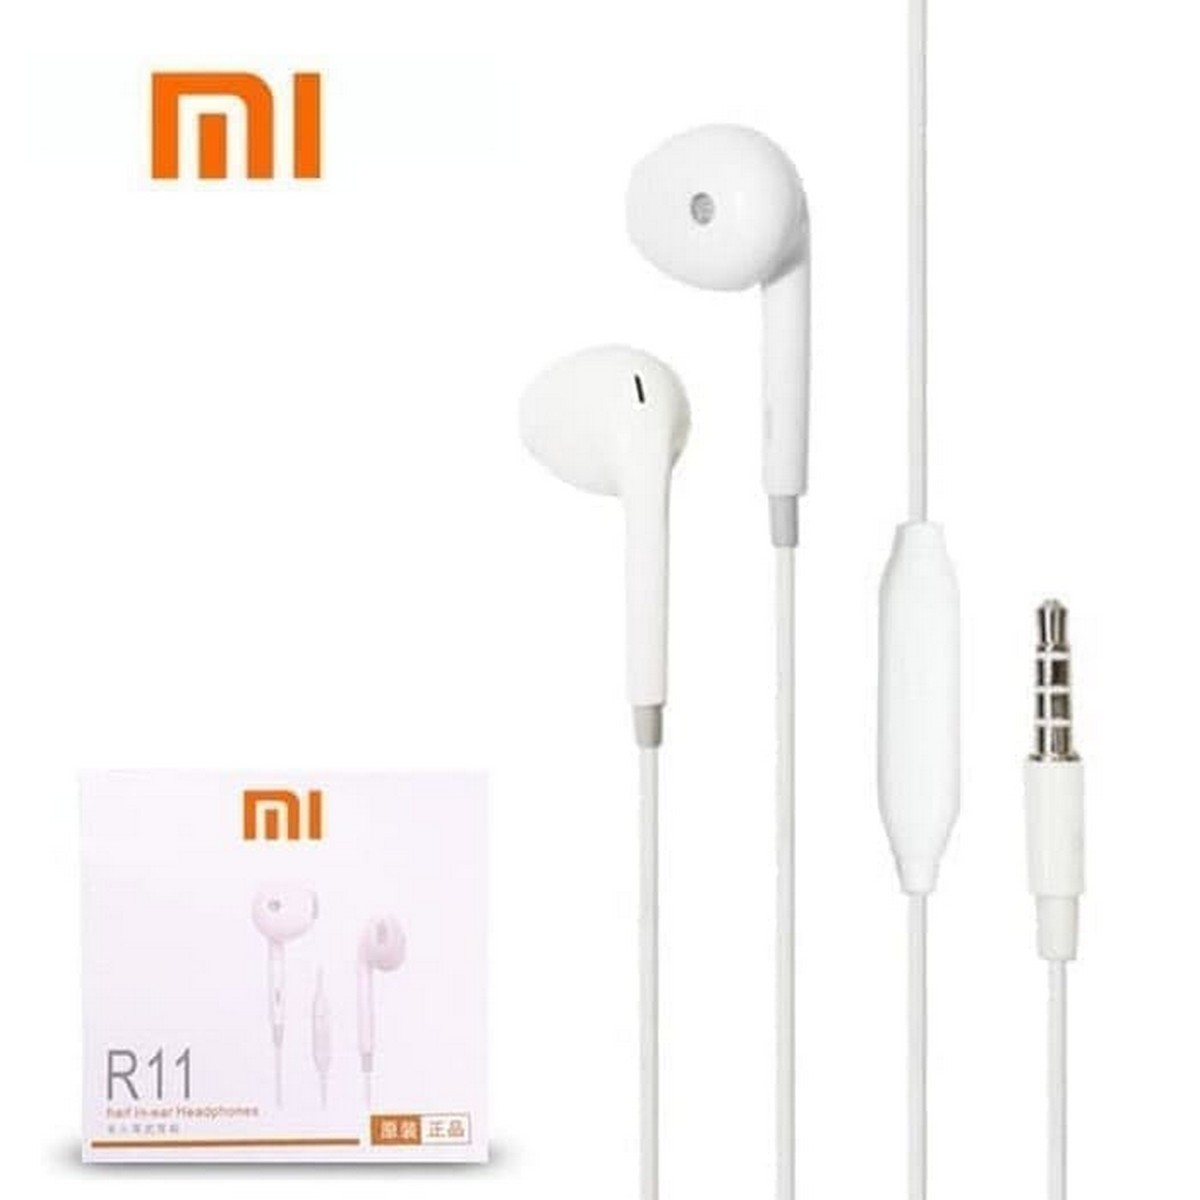 MI Handsfree For Mobile and Laptop Universal Handfree Ear Phone For Computer Wired Earphones Deep Bass Stereo Earbuds Handfree with Mic By DS Accessories